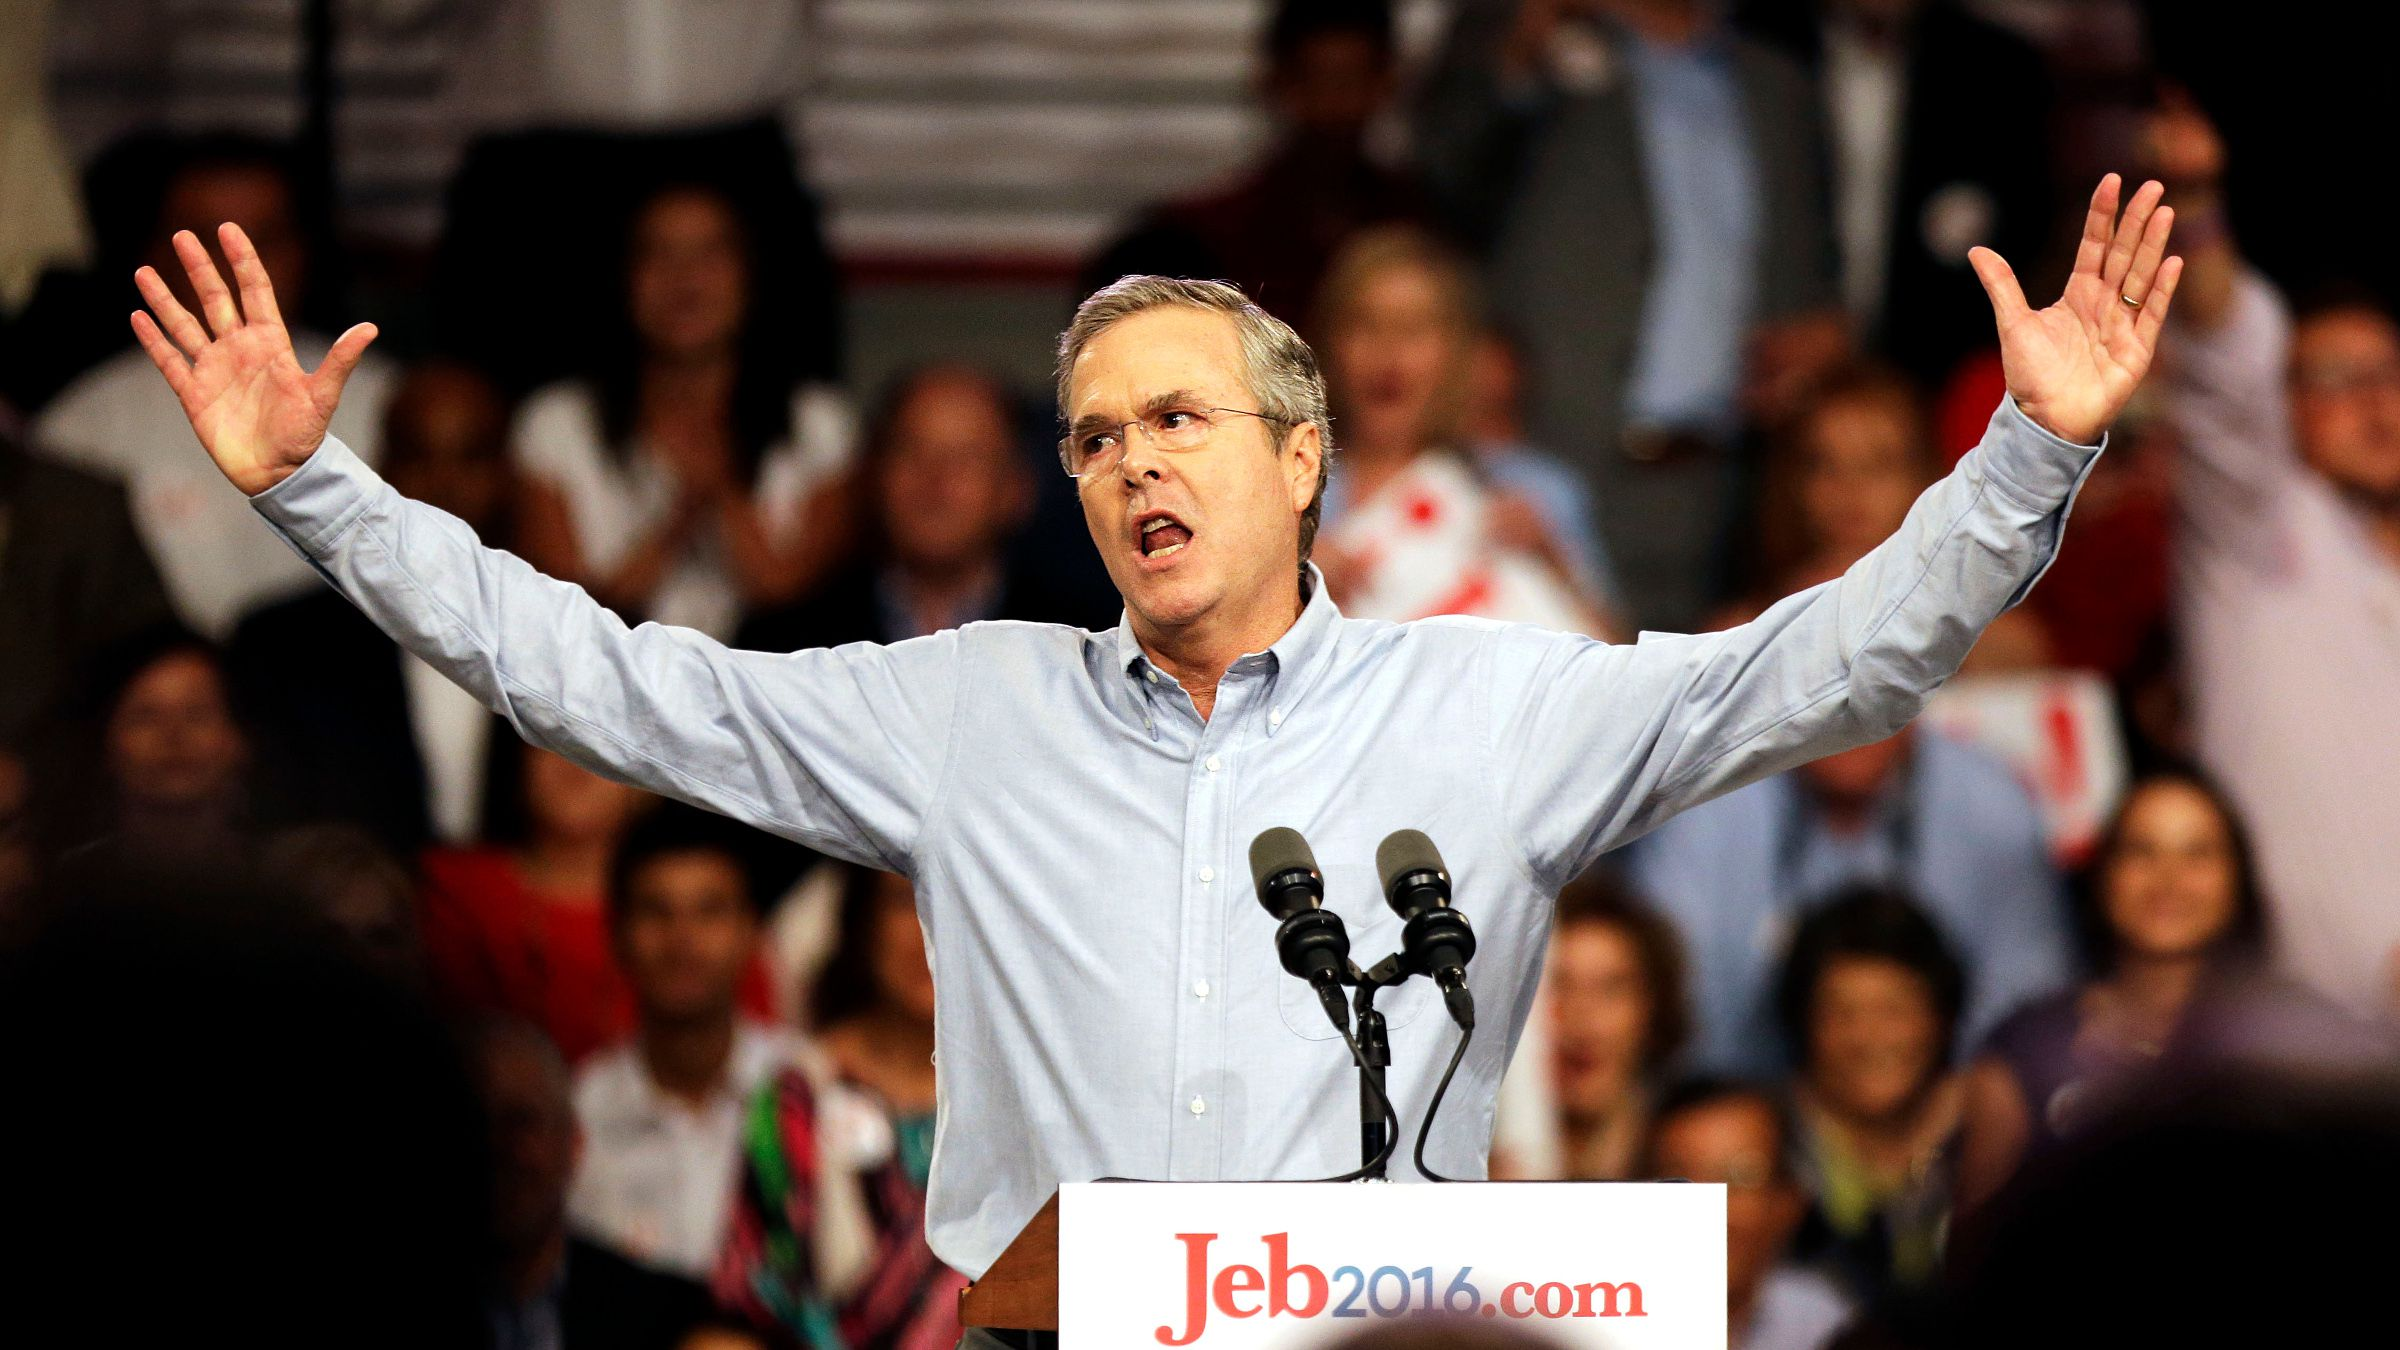 Former Florida Gov. Jeb Bush waves to the crowd as he formally joins the race for president with a speech at Miami Dade College, Monday, June 15, 2015, in Miami.